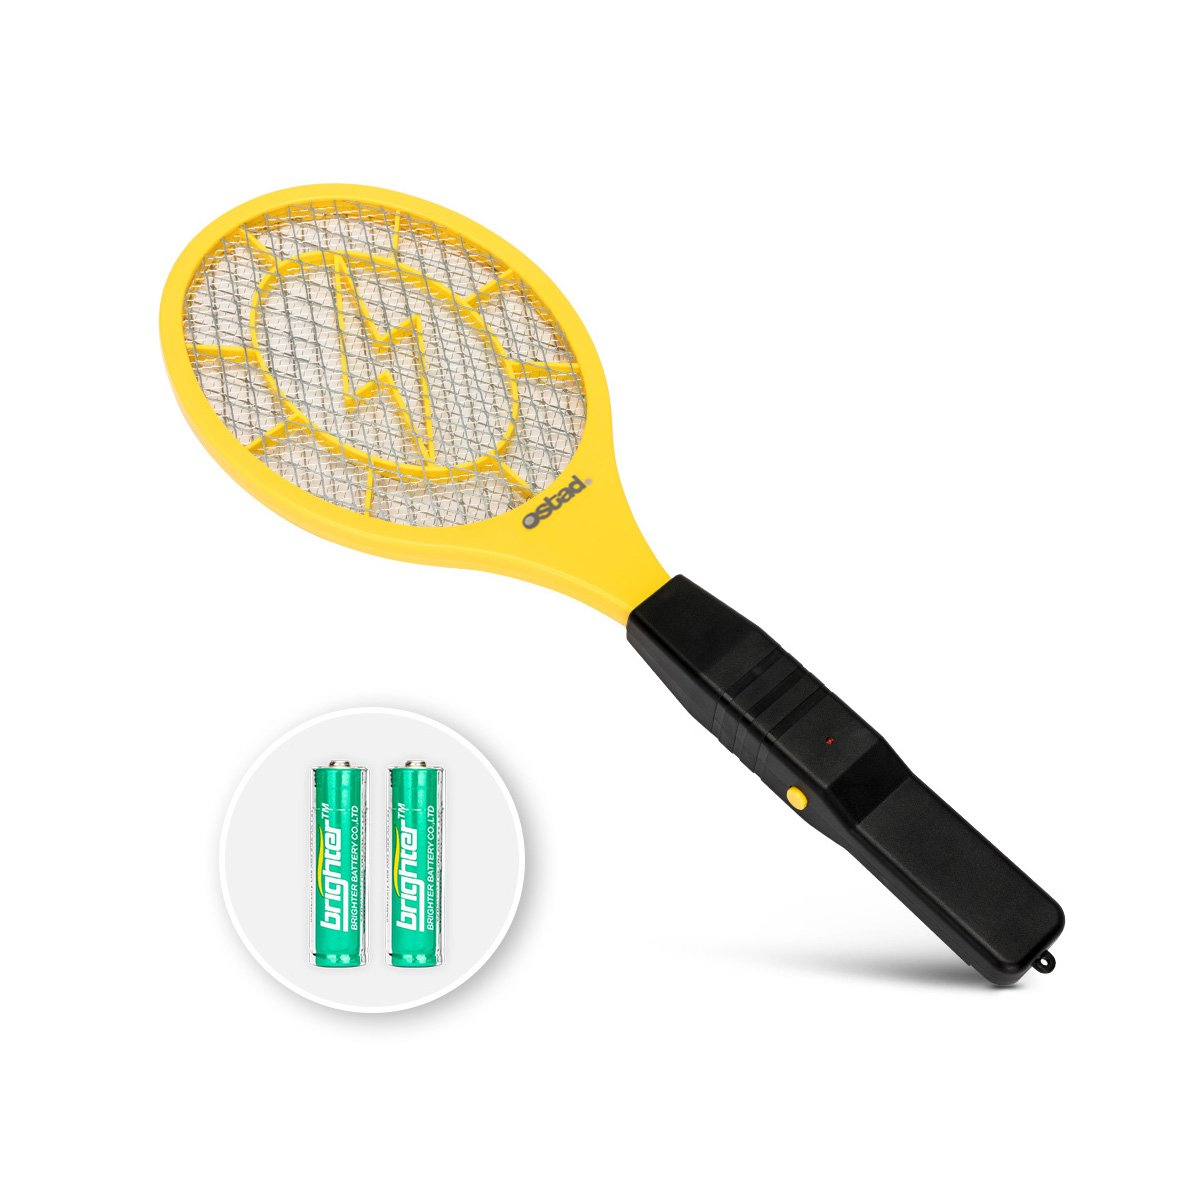 Electric Fly Swatter, Mini Bug Zapper Battery Powered for Mosquito, Flies Killer for Pest Control Indoor and Outdoor, 3000 Volt Power and Triple-Layer Safety Mesh, Bug Zapper Racket Insect Killer by Ostad